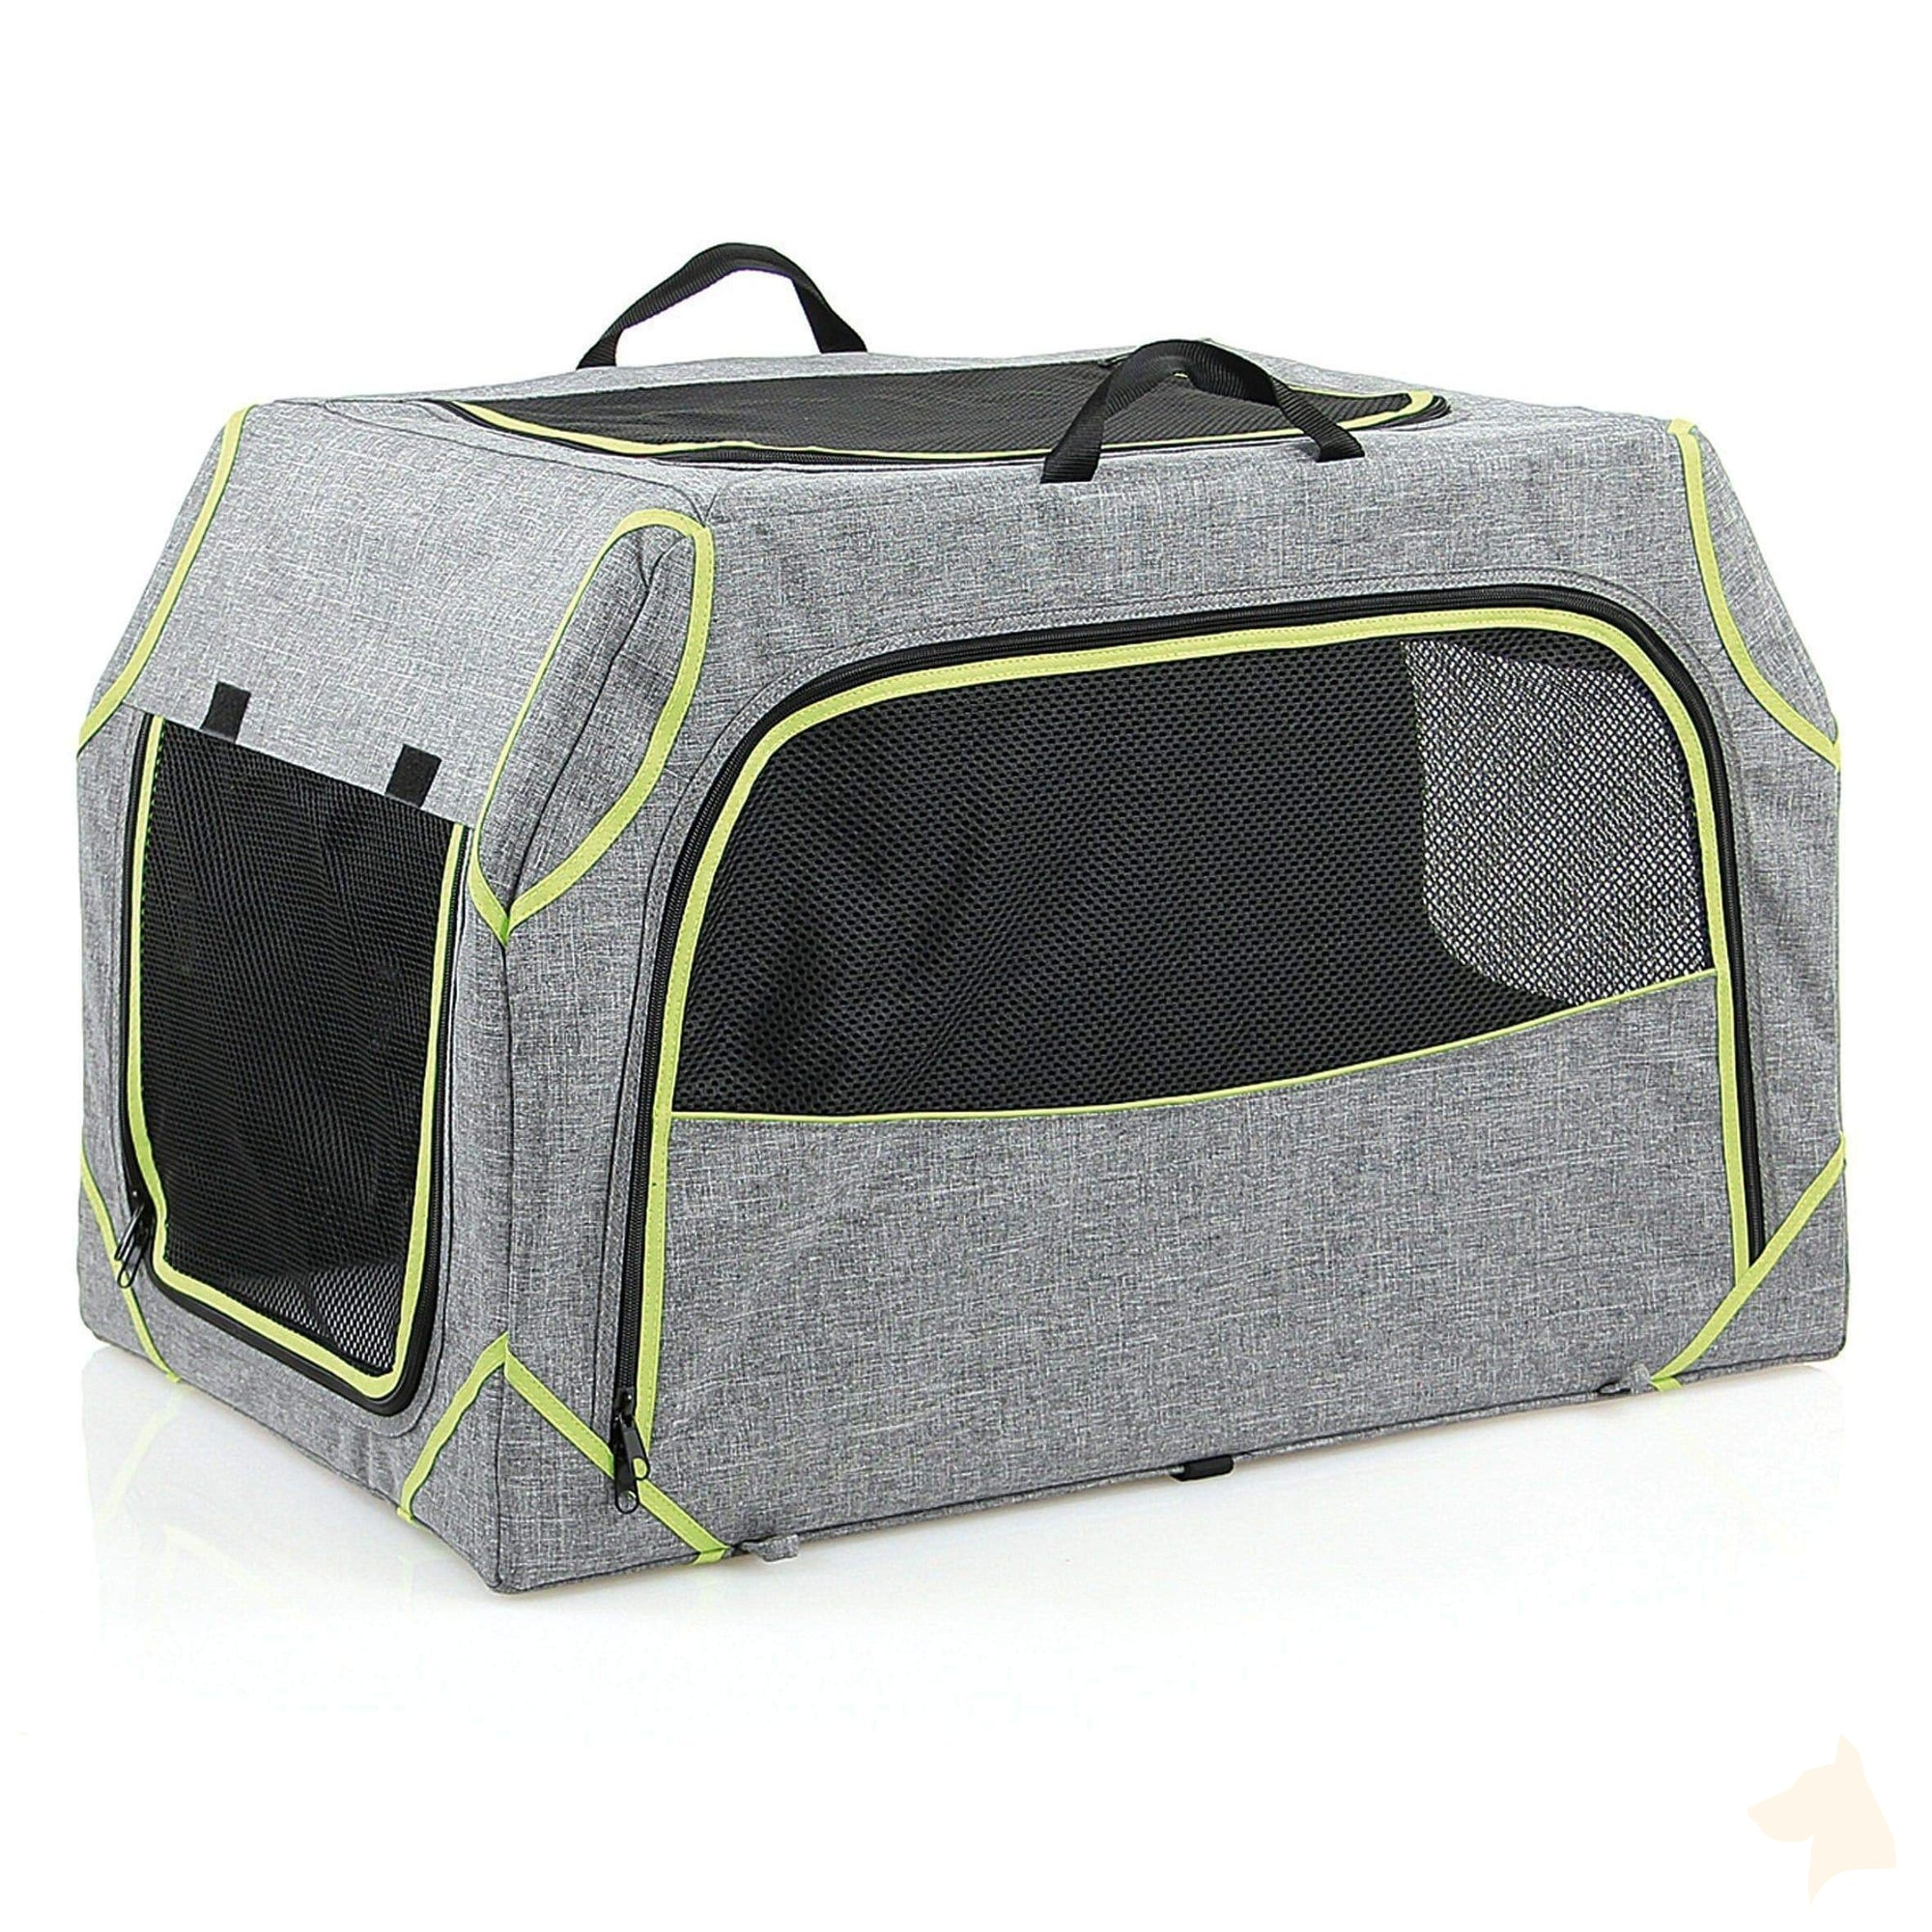 Transportbox Apox - grau-SwissPet-athleticdog